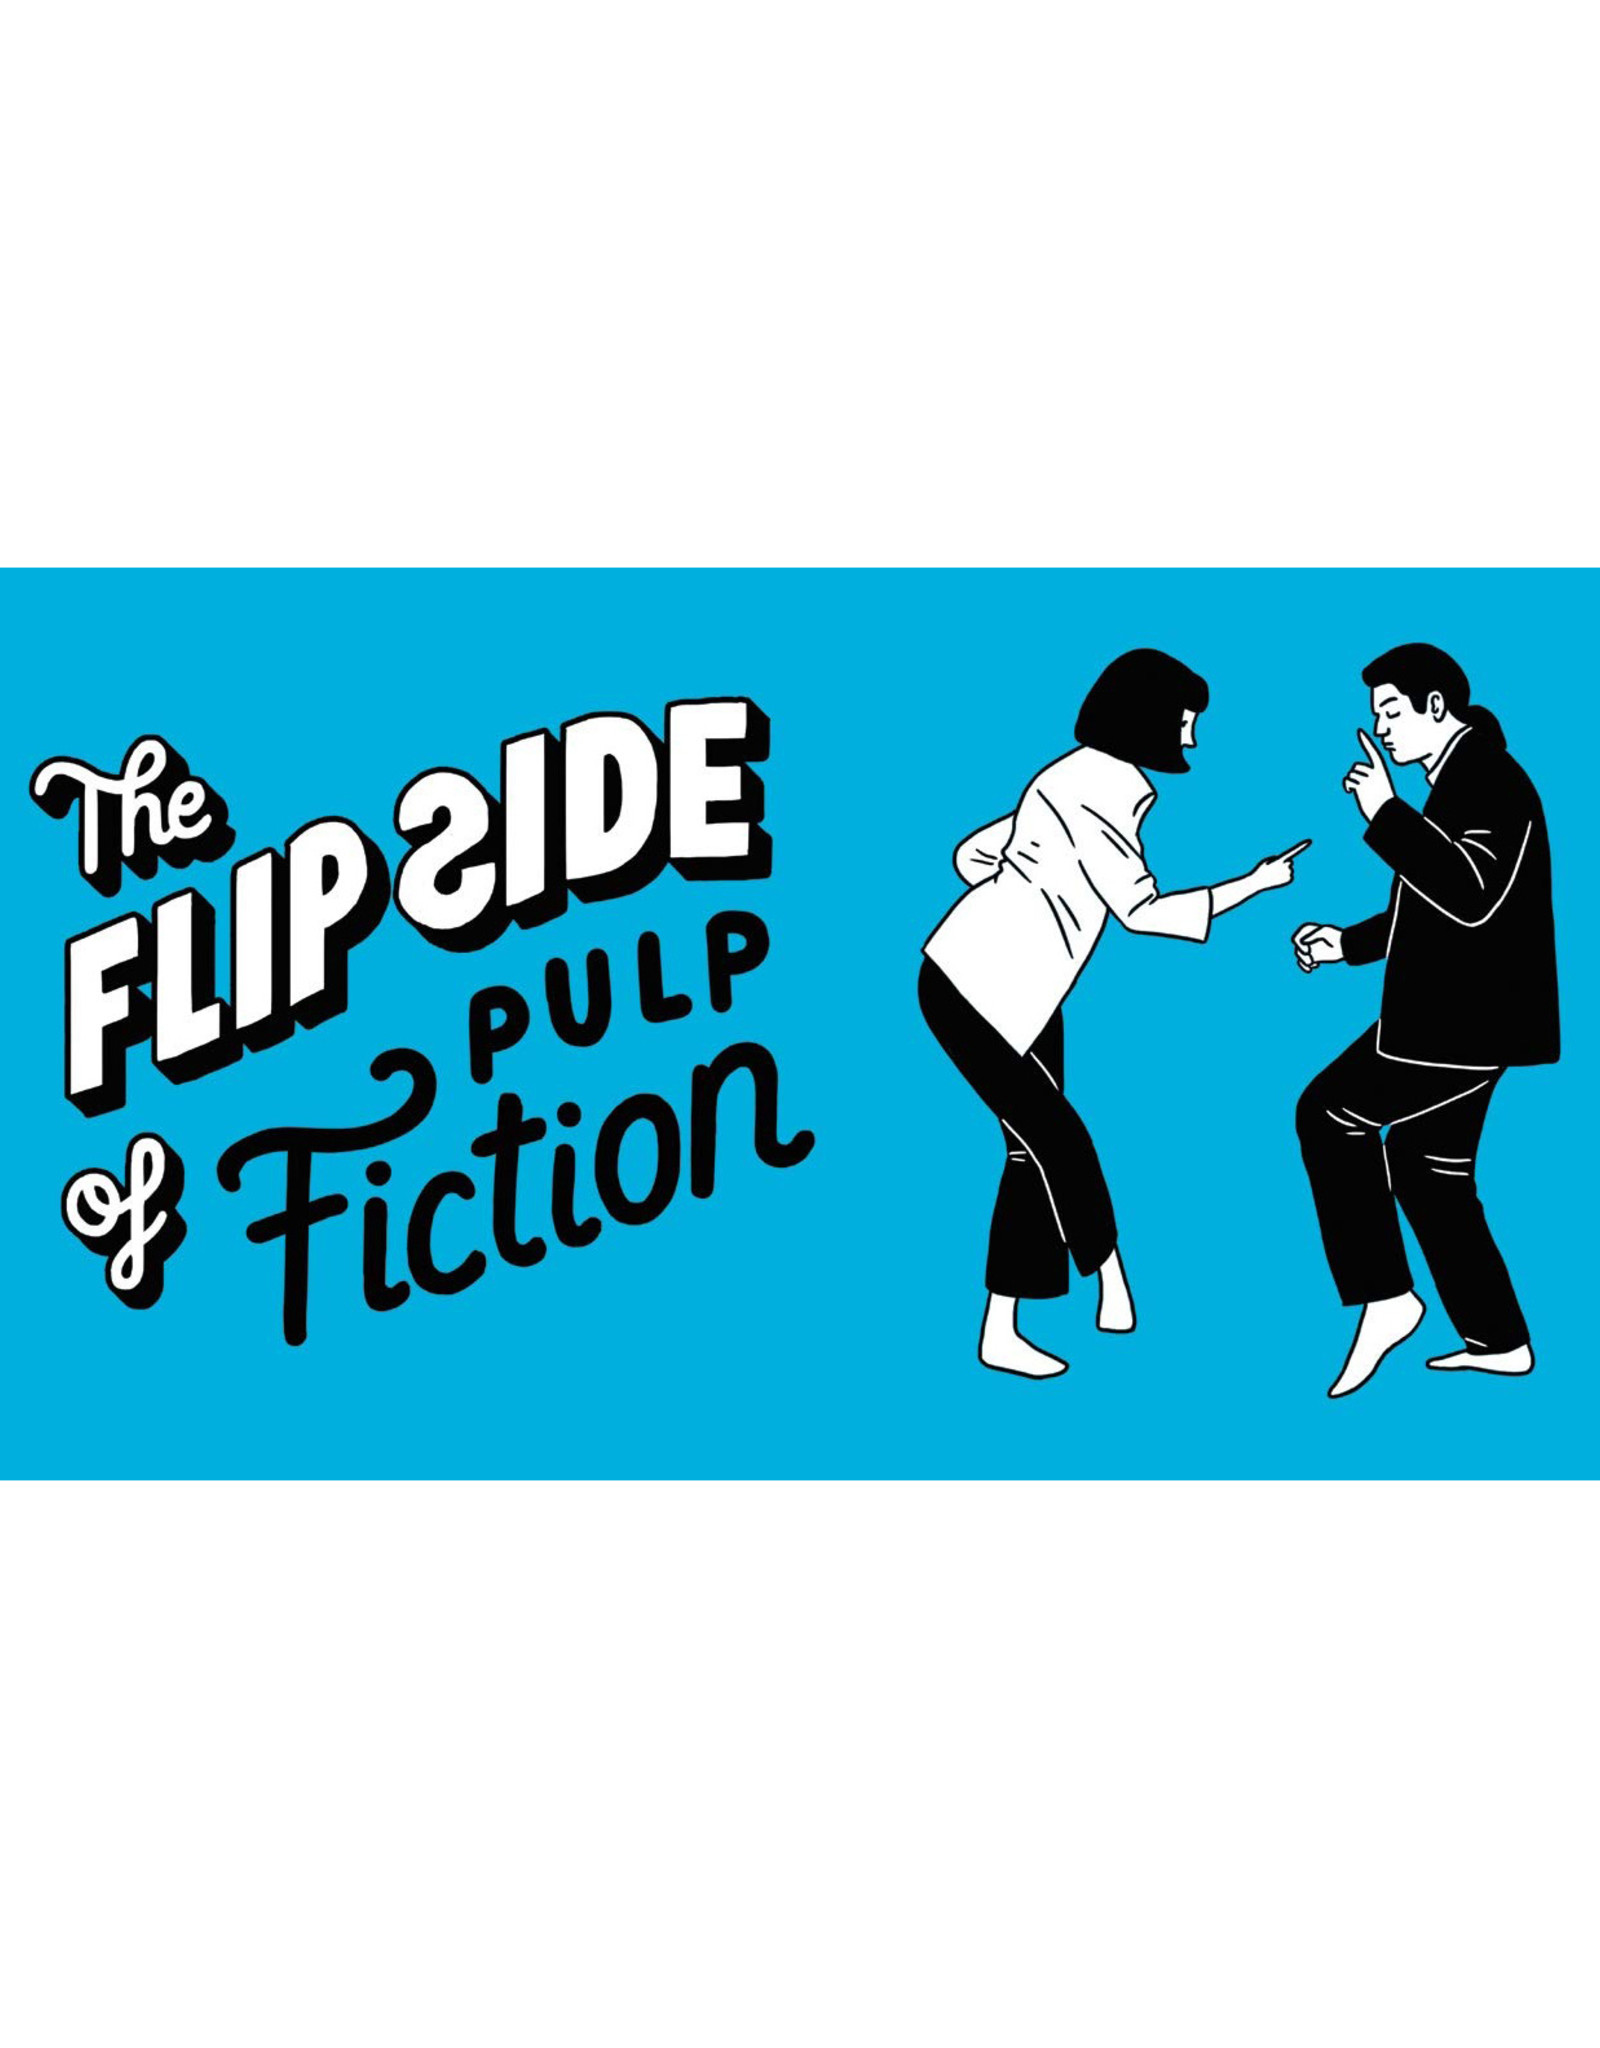 Flipside of Pulp Fiction